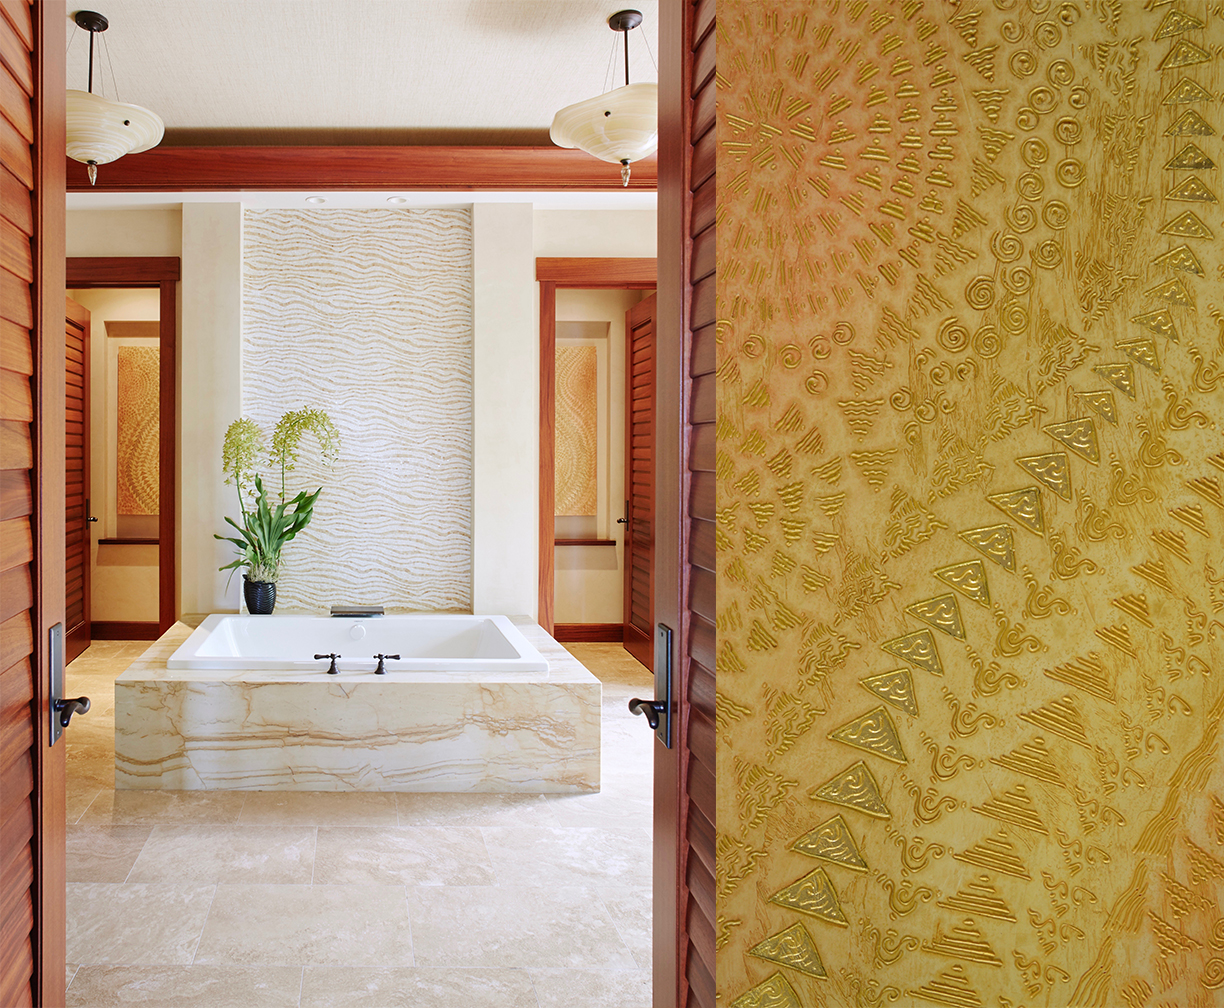 Residence at The Four Seasons Hualalai - En Suite Bathroom - Blessings of a Golden Rose 1 & 2 - see process page in the painting page dropdown for more details.